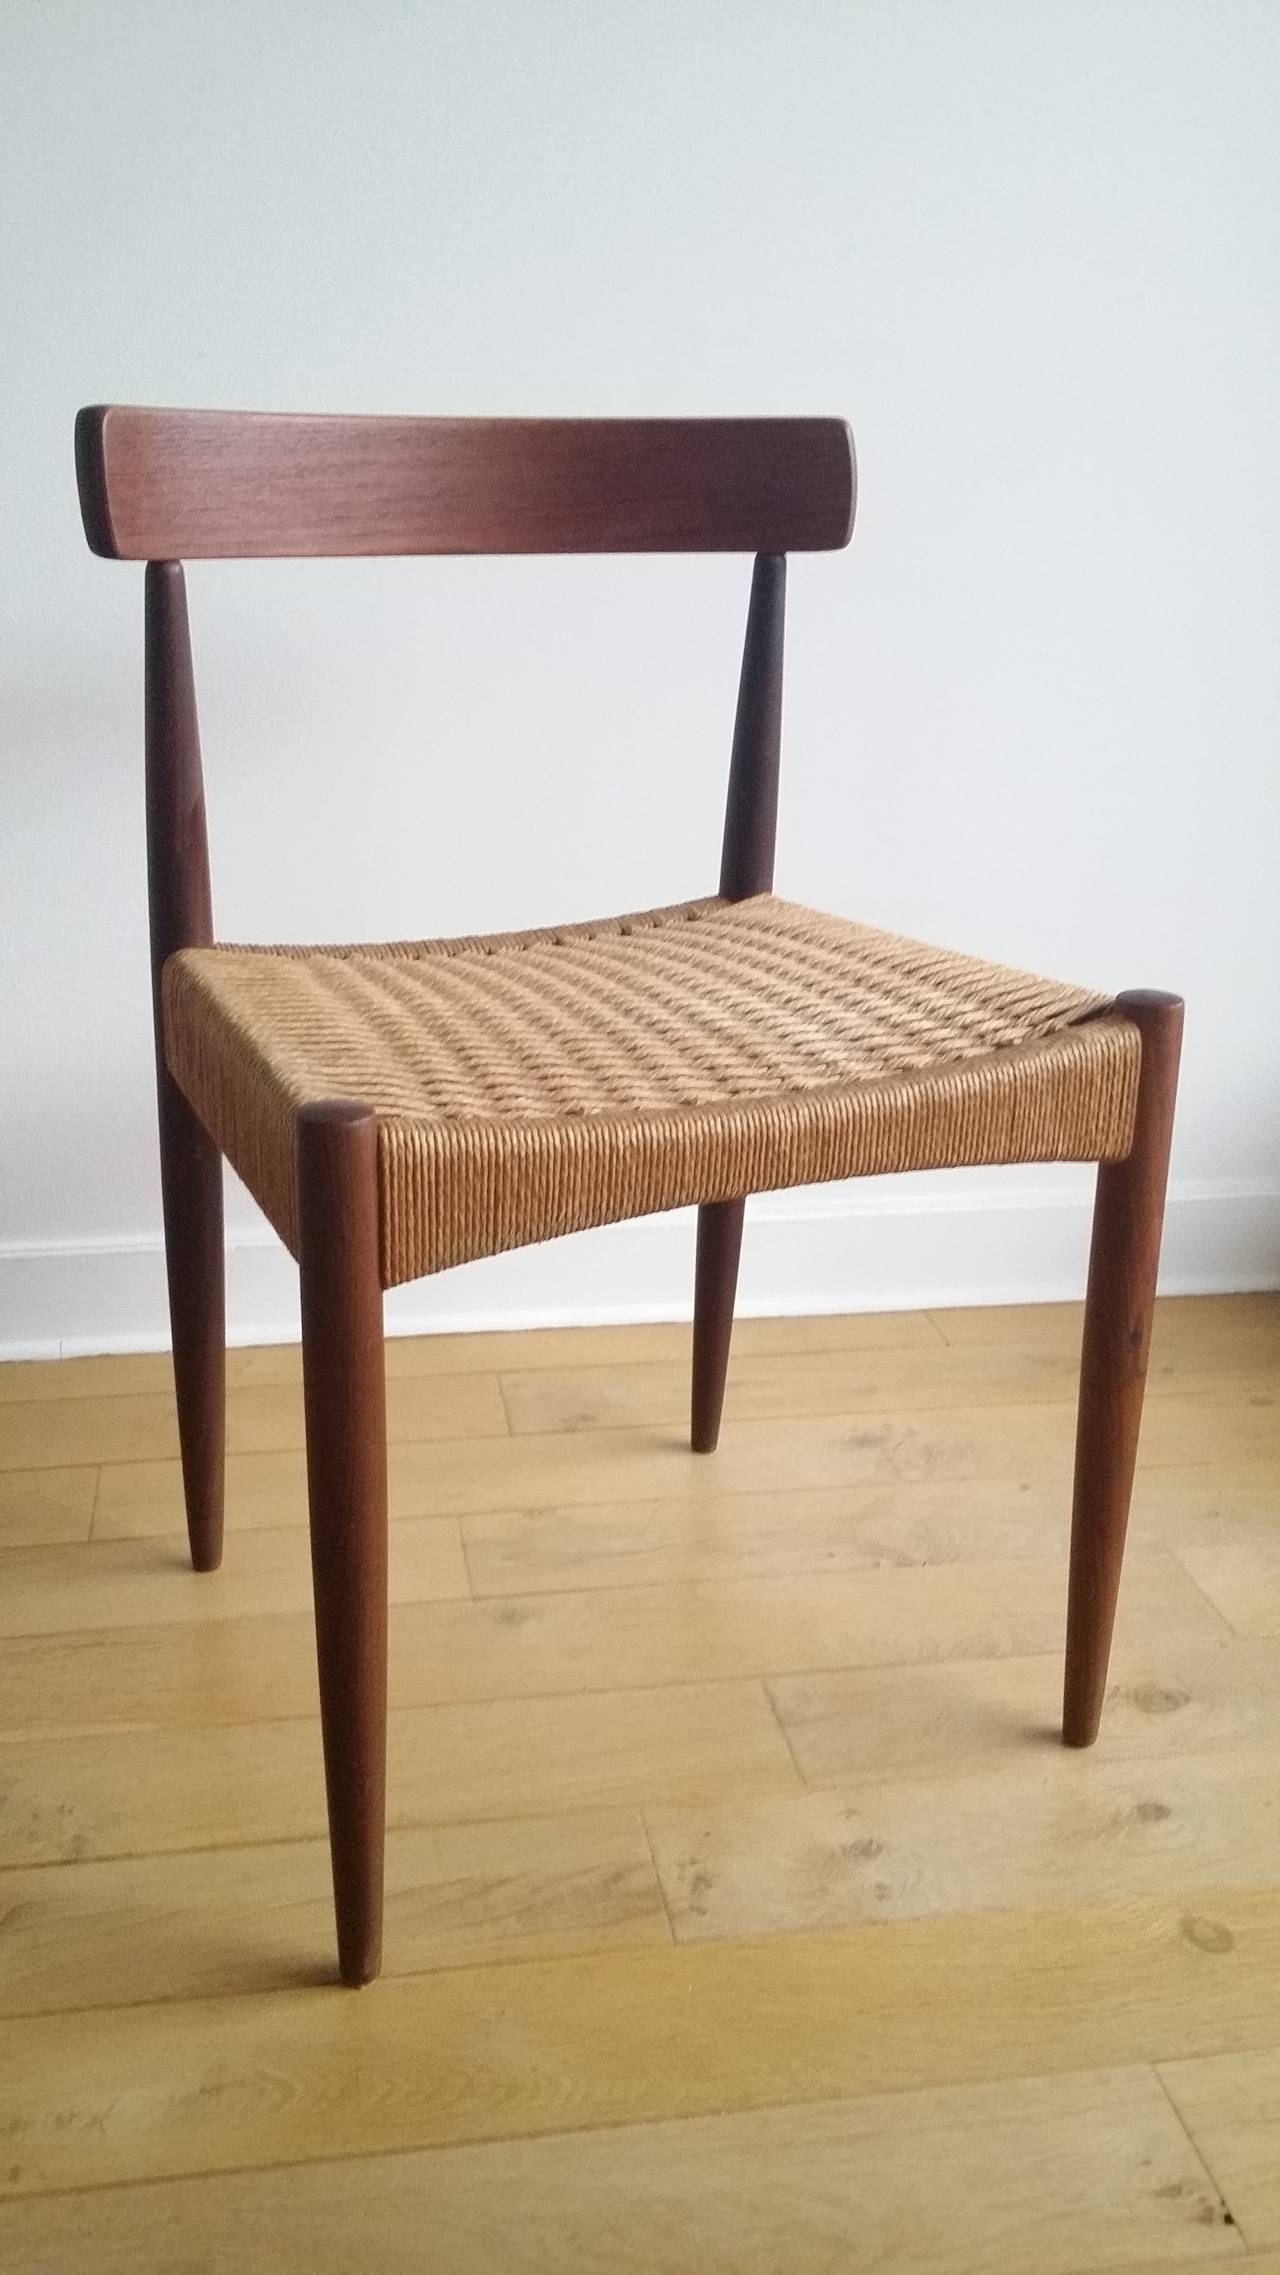 Pair Of Signed Danish MK Chairs, Denmark, 1960s For Sale 1